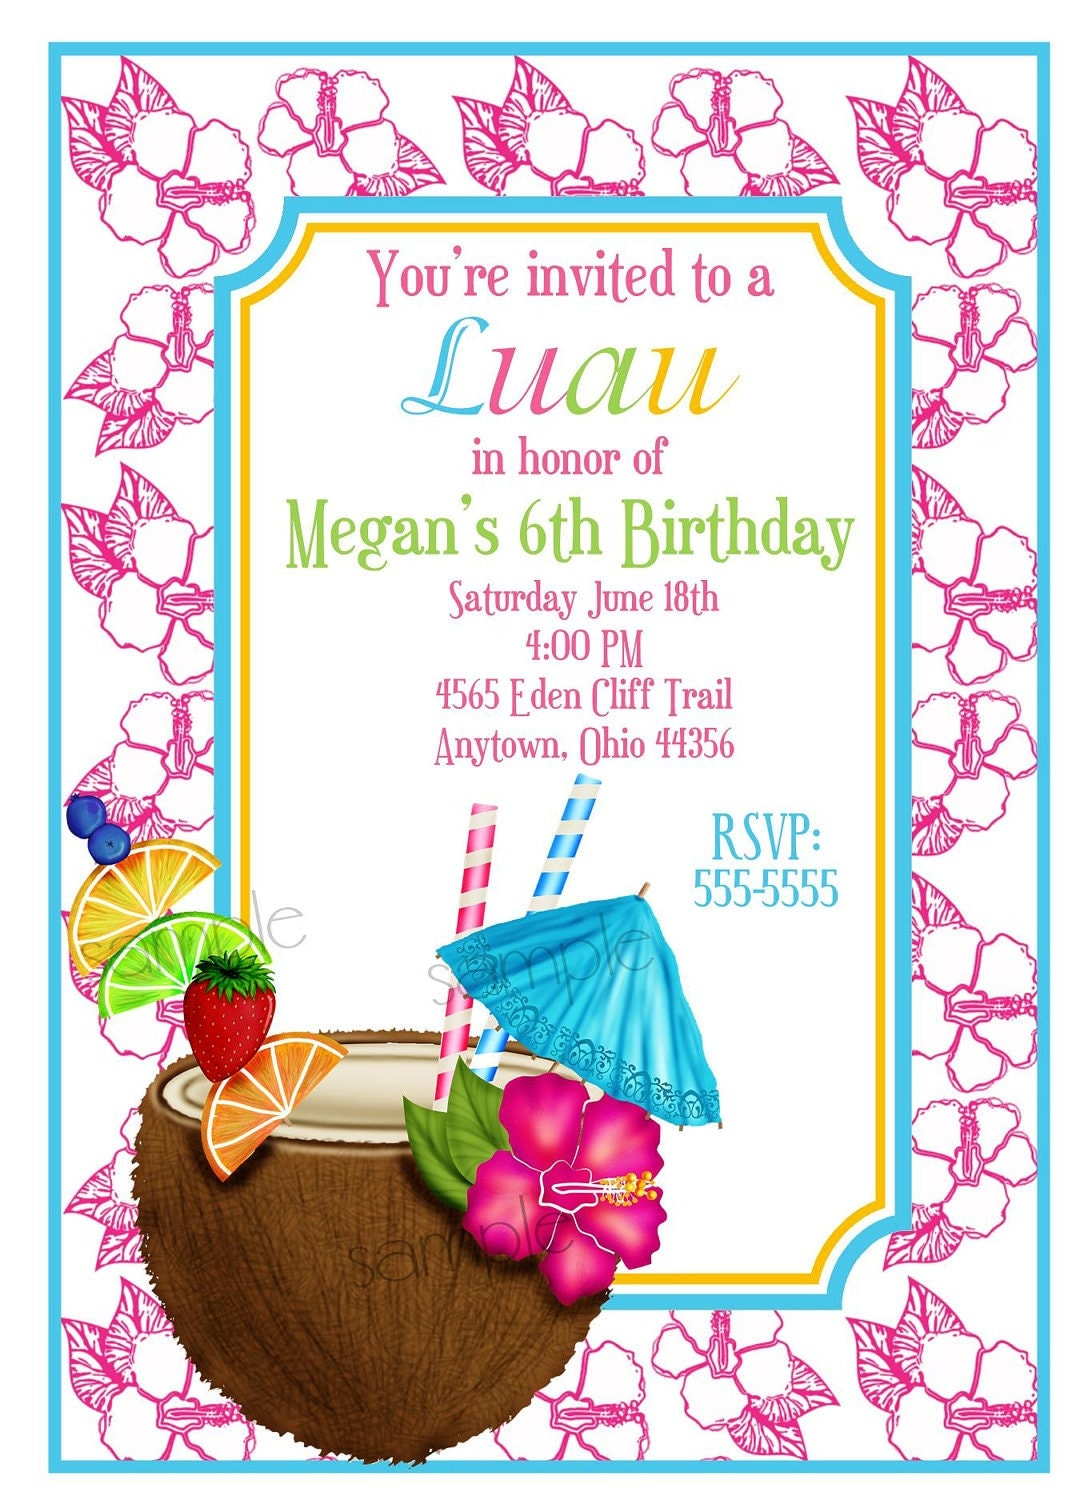 Design Your Own Invitations Free Printable as best invitation example